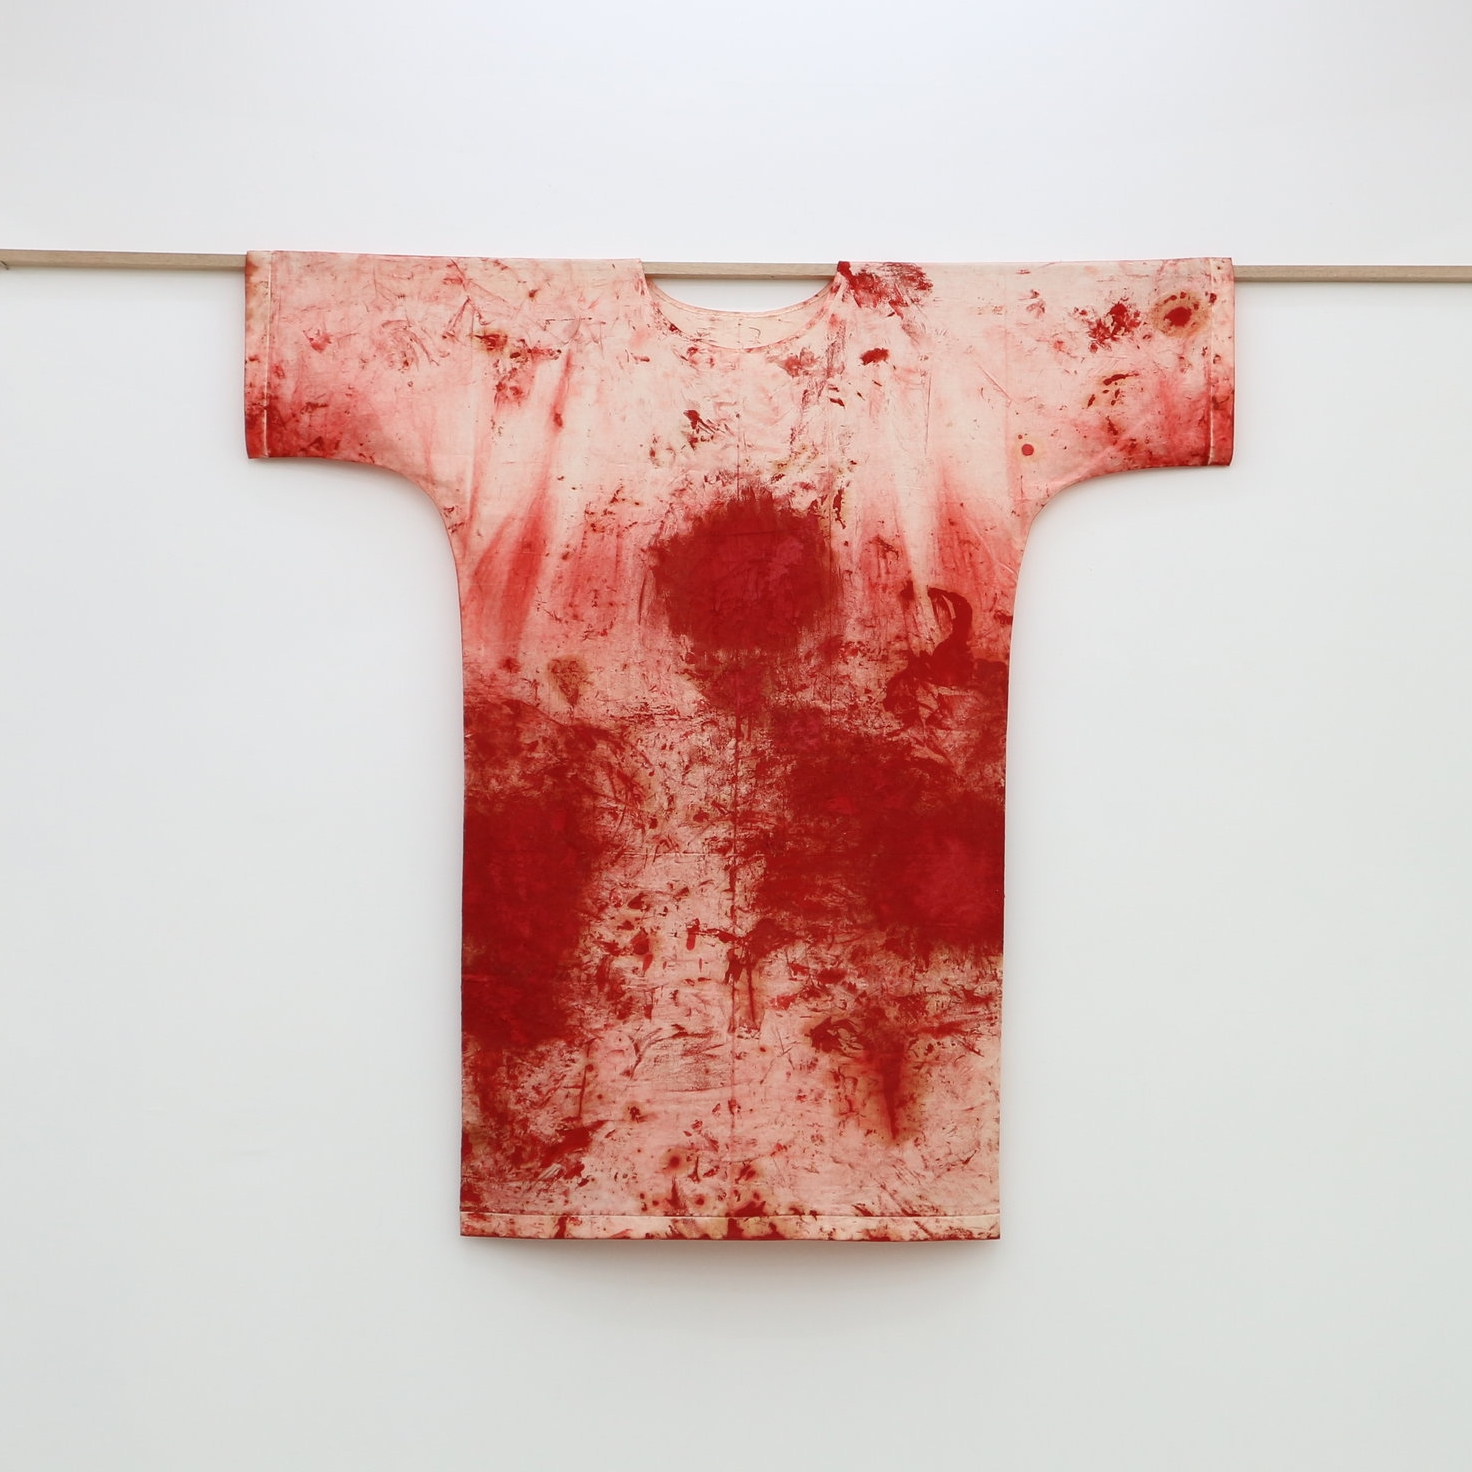 HERMANN NITSCH The Orgies Mysteries Theatre  October 20 - November 17, 2018   >> VIEW EXHIBITION